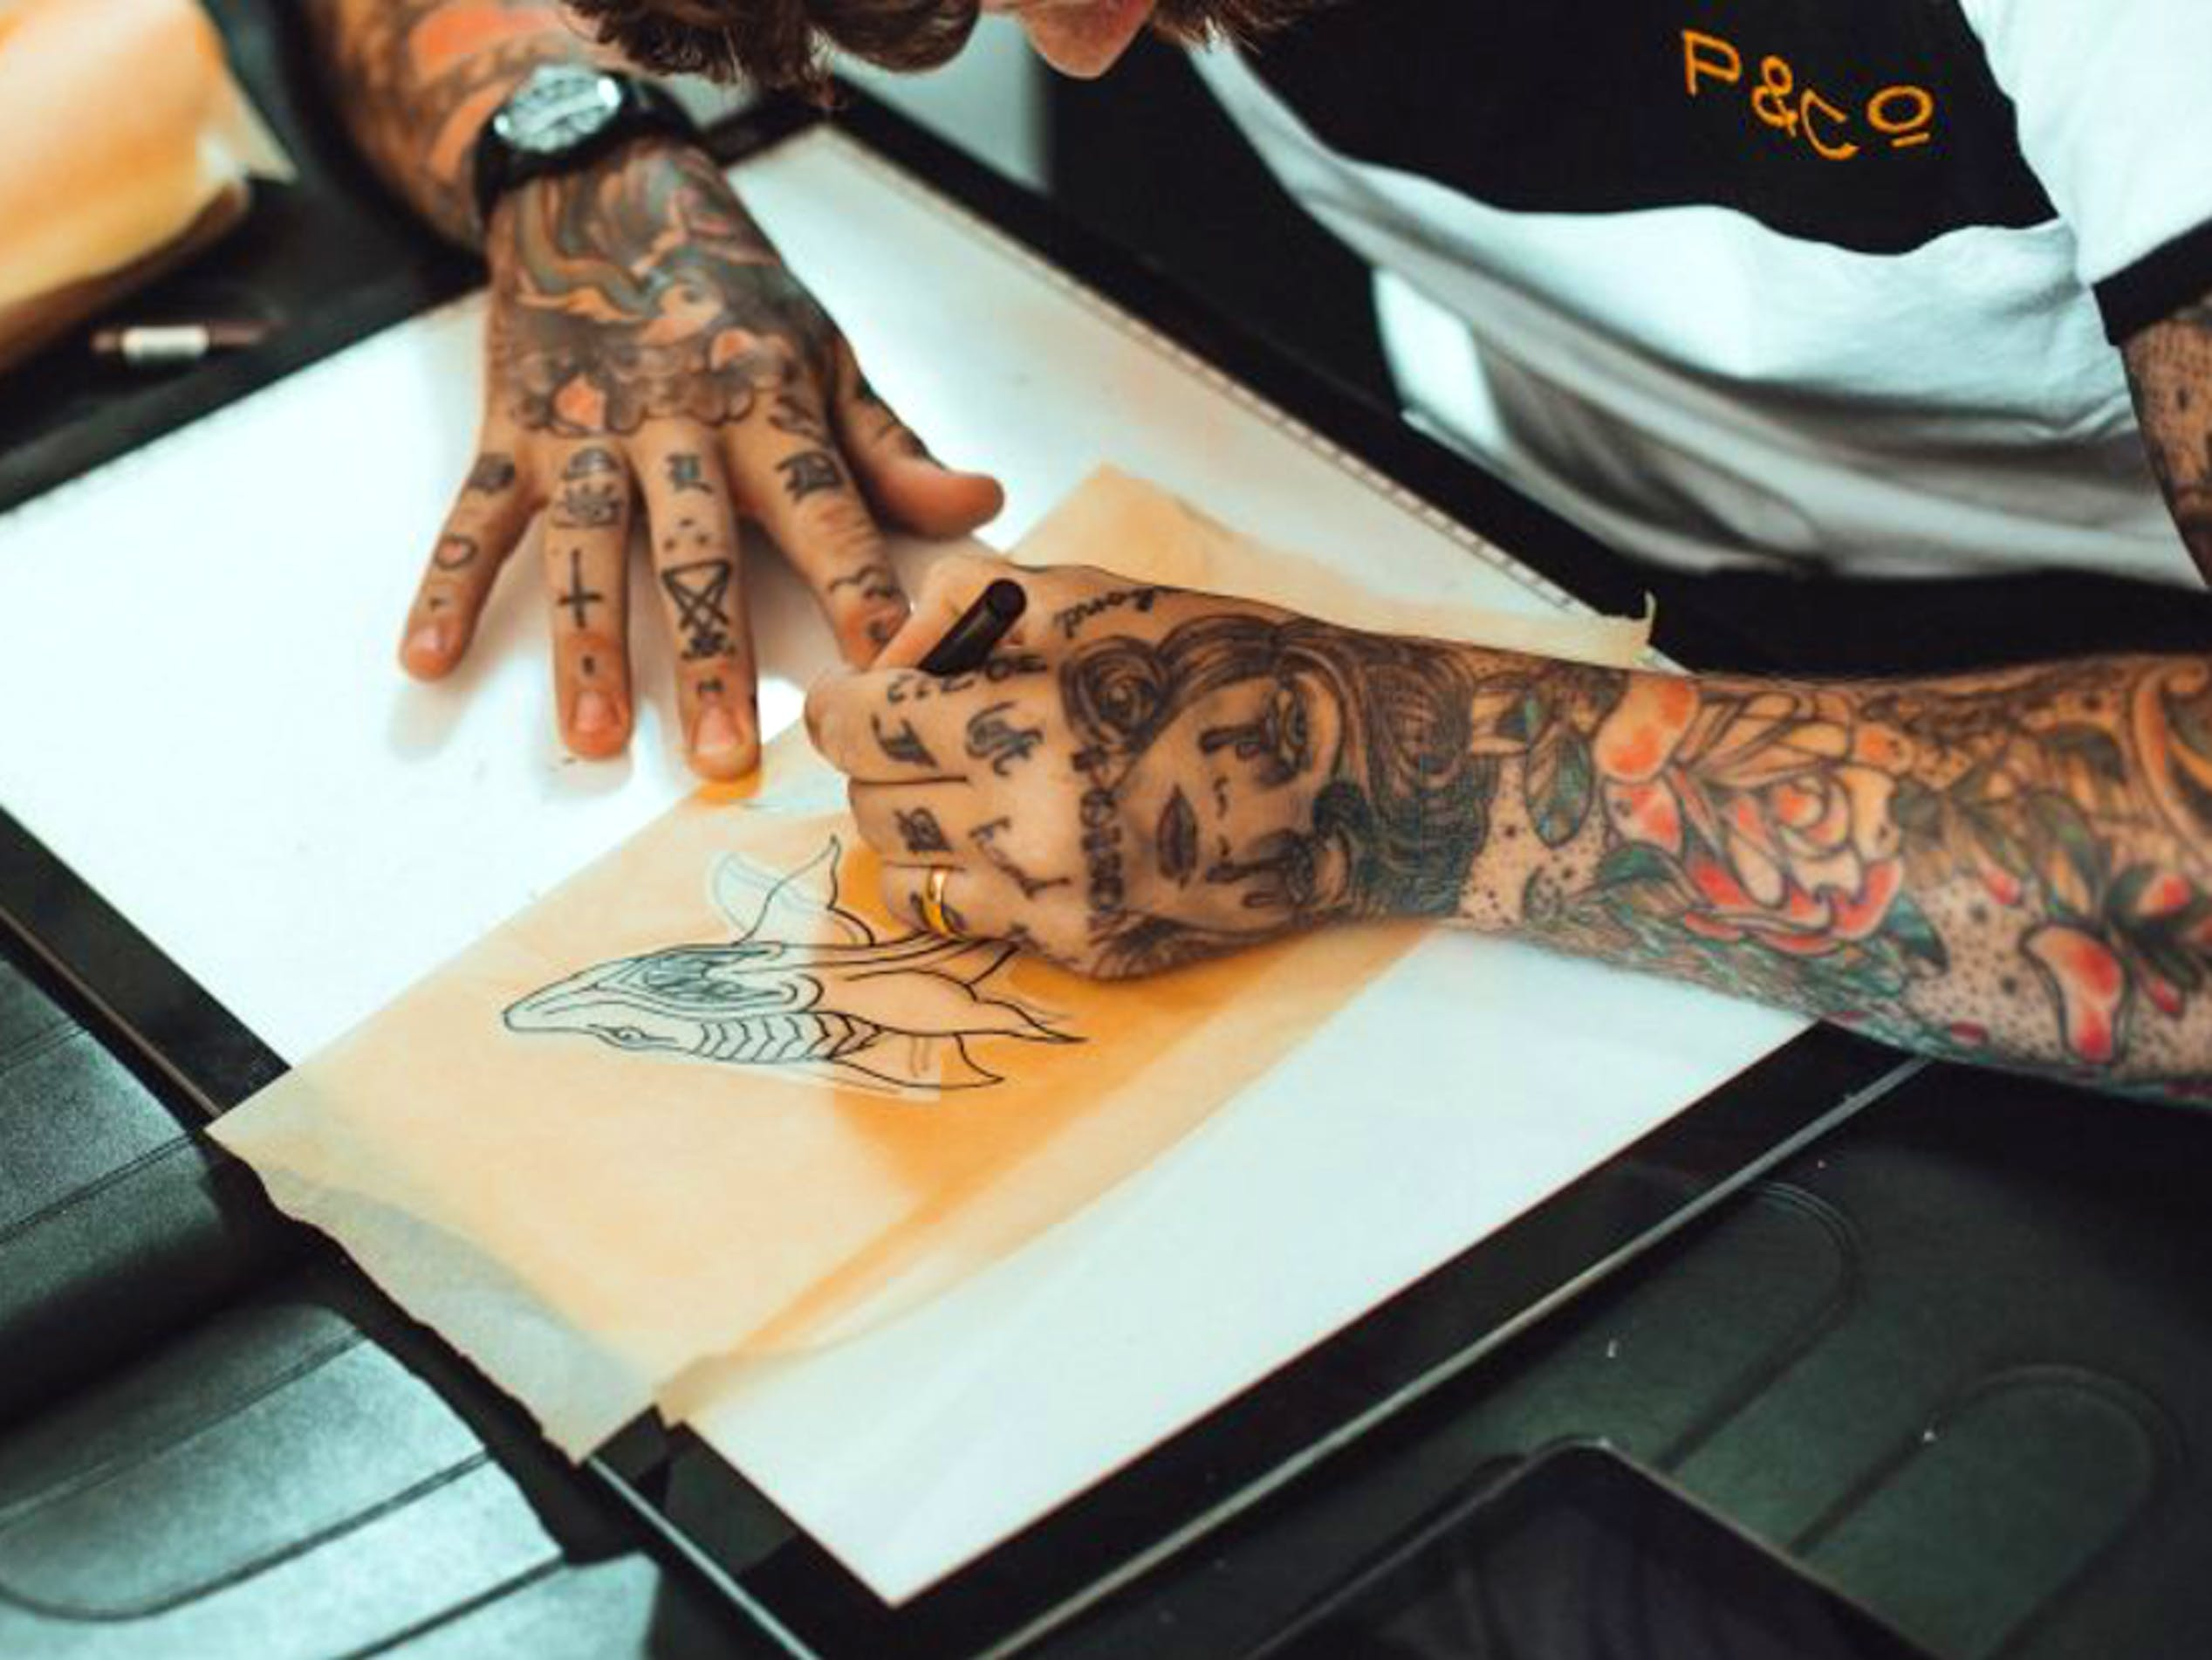 An artist at Vagabond Tattoo in London traces a sketch to produce a temporary stencil that will help him and the client determine where to place the tattoo. Stencils don't depict shading and color the same way a sketch does, so don't hesitate to ask your artist for clarification when deciding if you want to resize or reposition the stencil before the actual tattooing begins.